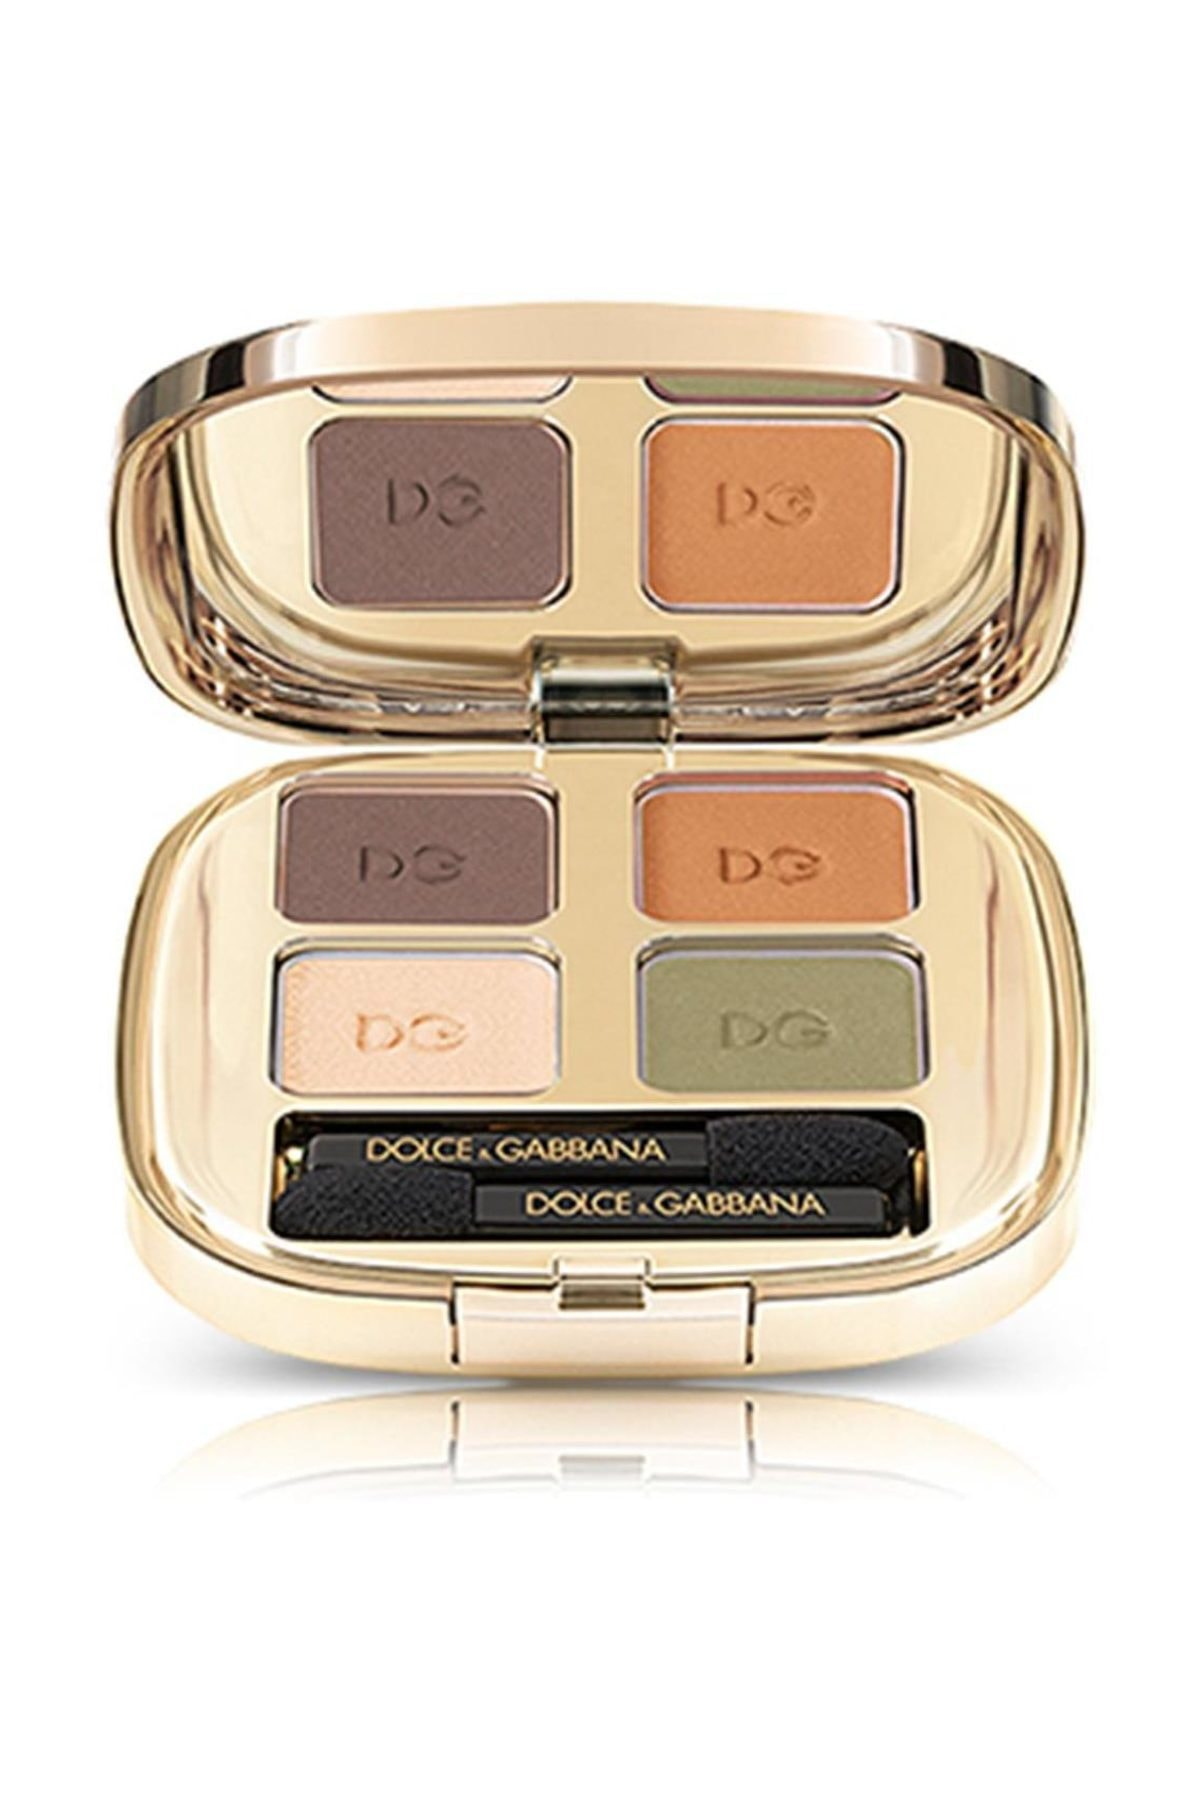 Dolce Gabbana Smooth Eye Colour Quad Göz Farı 120 Mediterraneo 737052201740 1